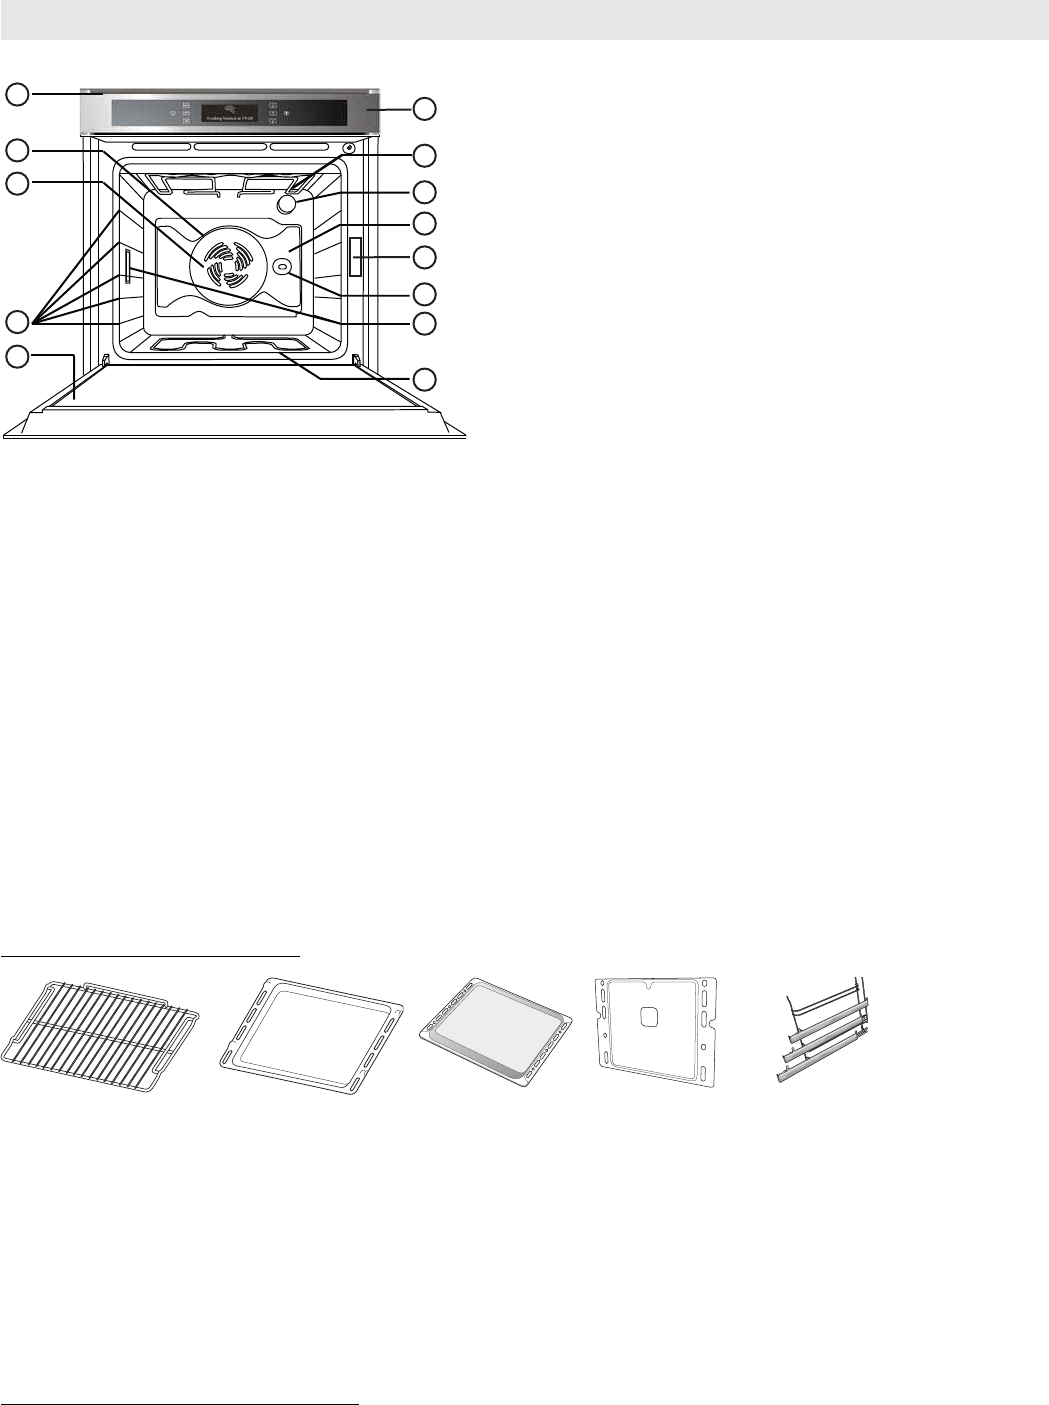 Whirlpool AKZM 656, AKZM 6560 INSTRUCTIONS FOR OVEN USE